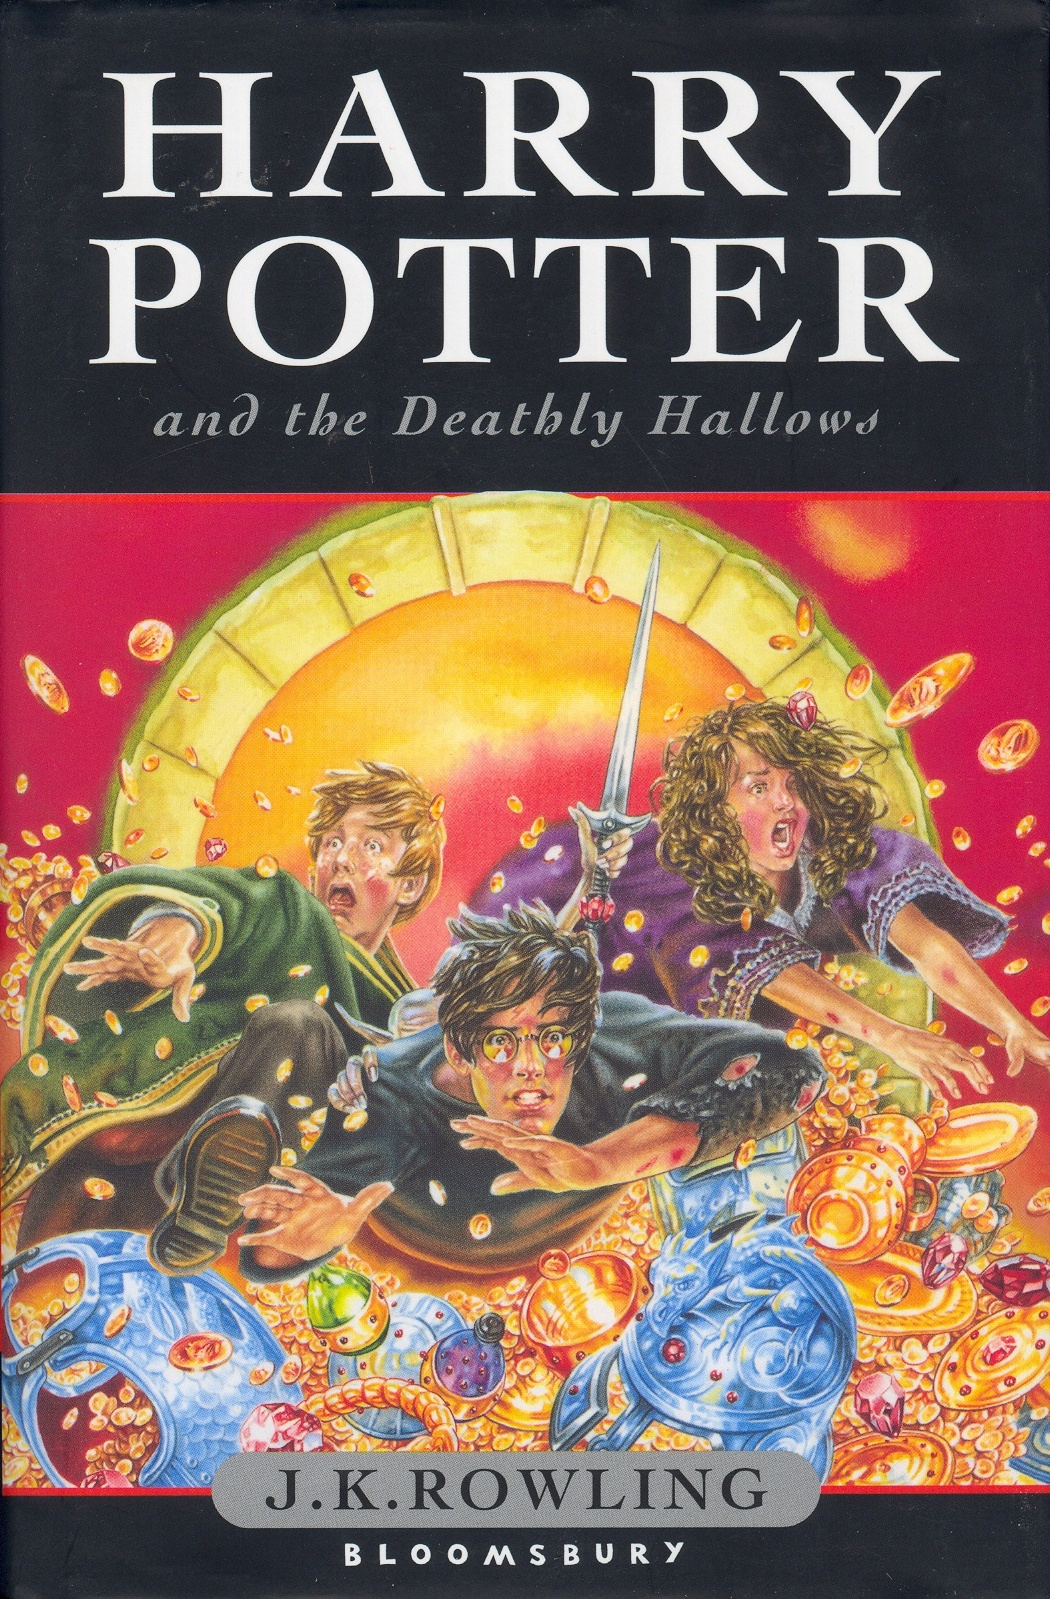 Kathleen Libro Libro Harry Potter And The Deathly Hallows 2007 21